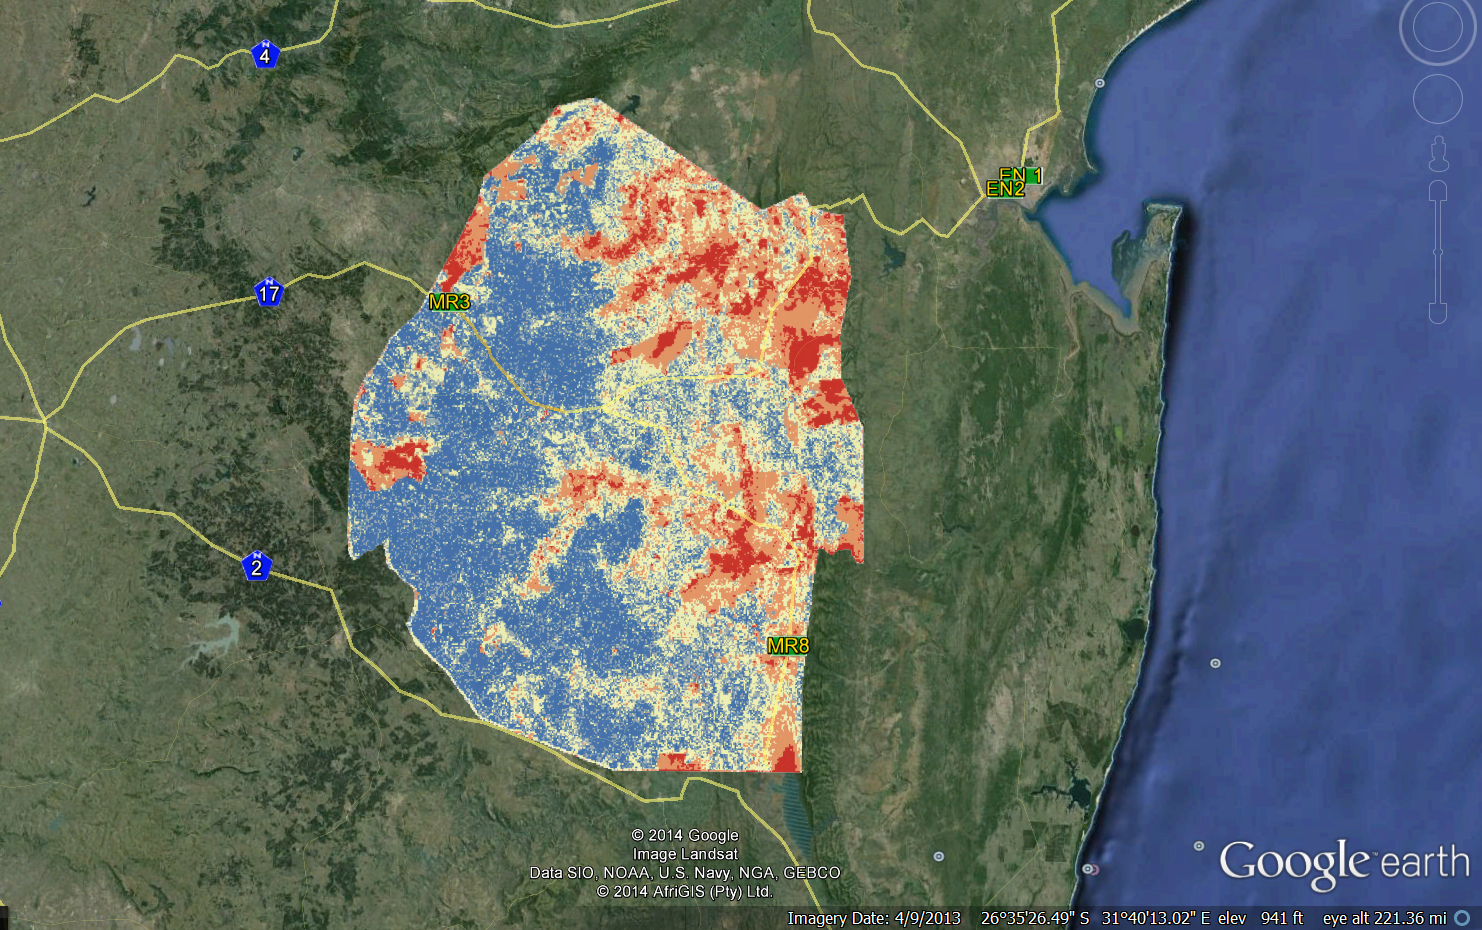 UCSF, Google Earth Engine Making Maps to Predict Malaria ... on google latitude, gis map, from google to map, street view map, google moon map, virtual earth map, united states map, the earth map, google us map, google maps italy, world map, europe map, google maps car, bing map, google sky, google africa map, earth view map, flat earth map, google street view, satellite map,